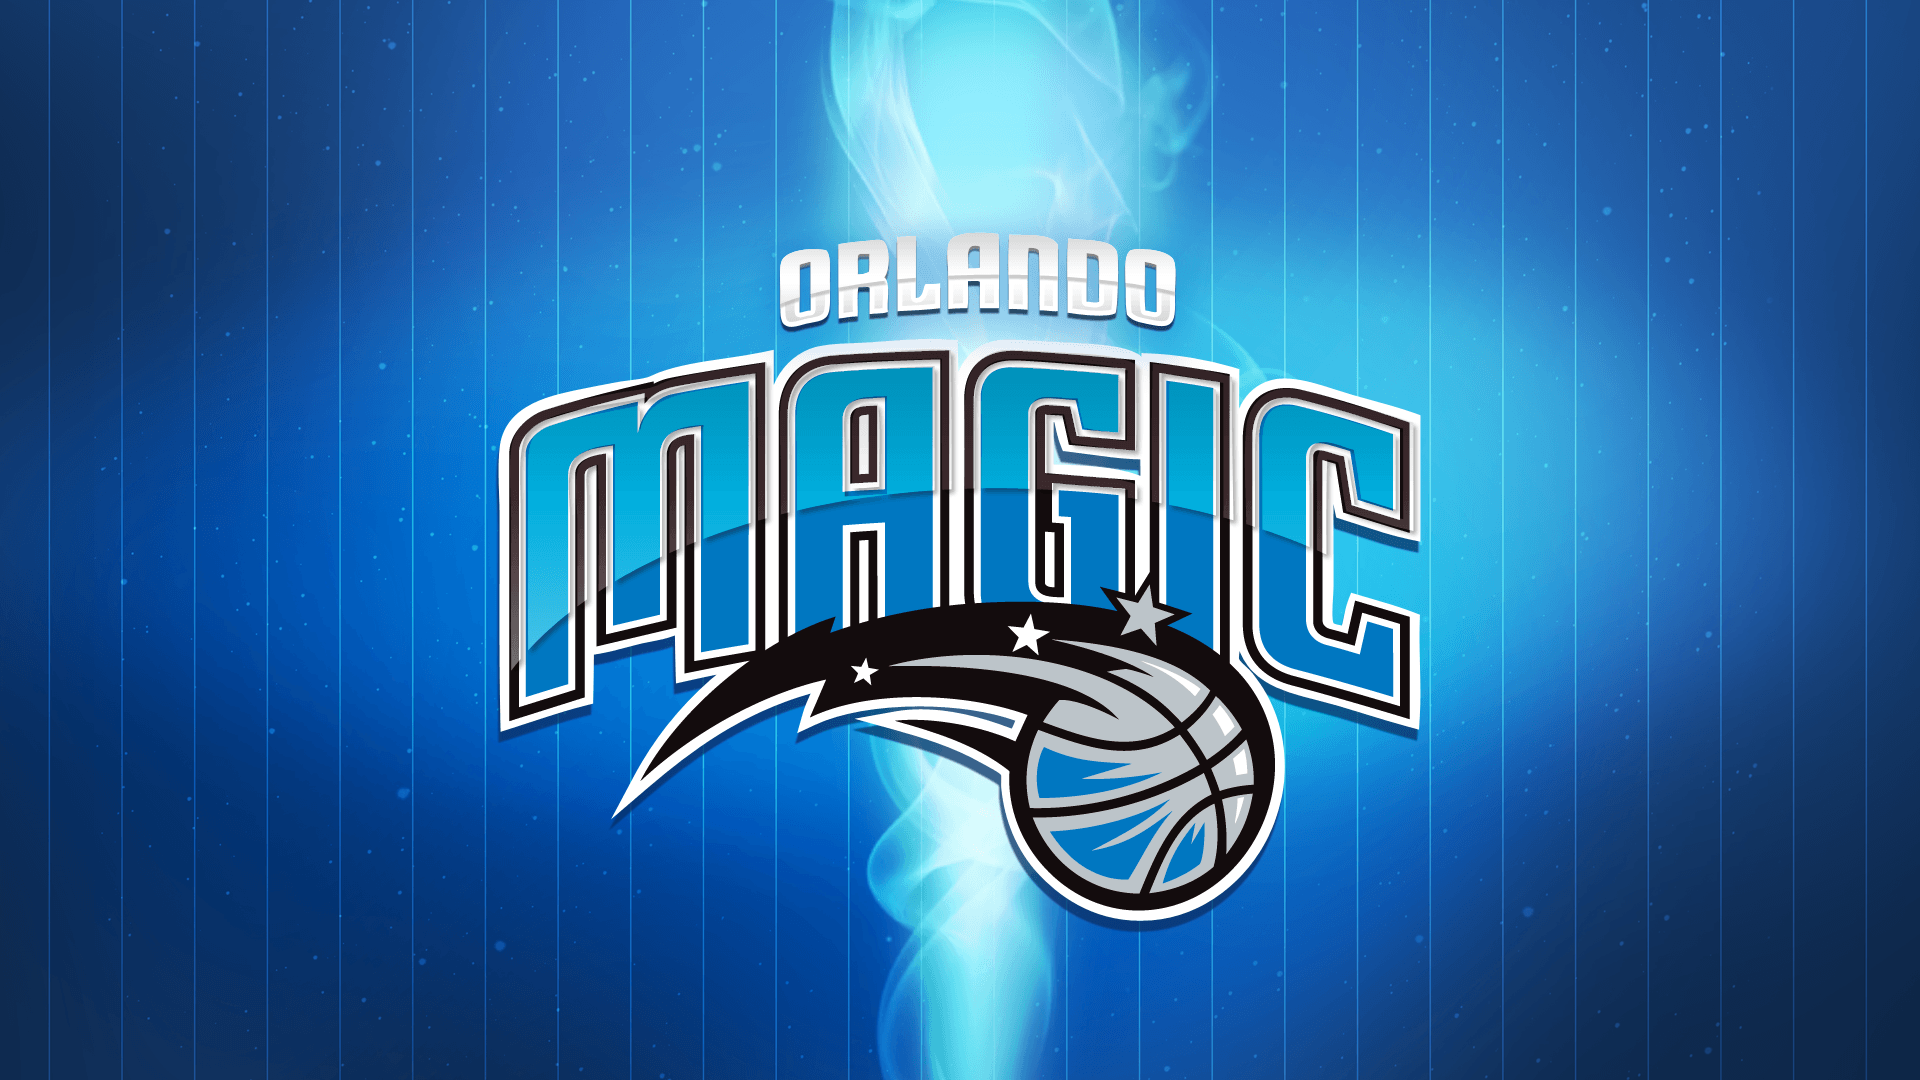 ORLANDO MAGIC nba basketball wallpapers